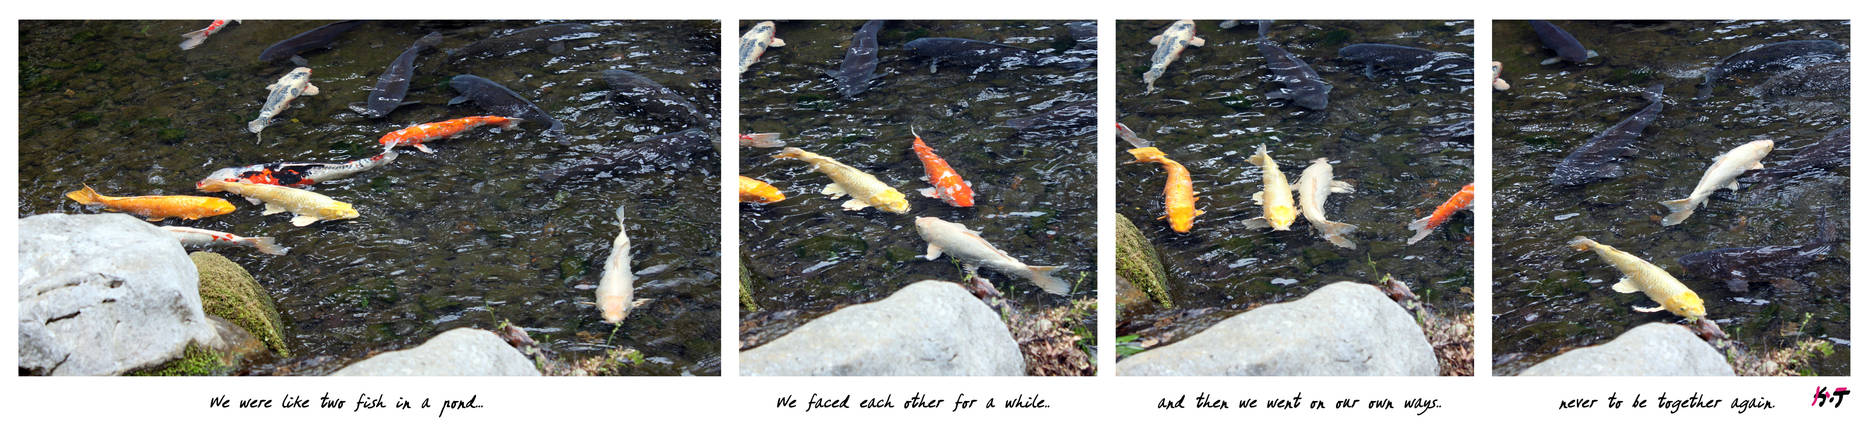 Just two fish in the pond